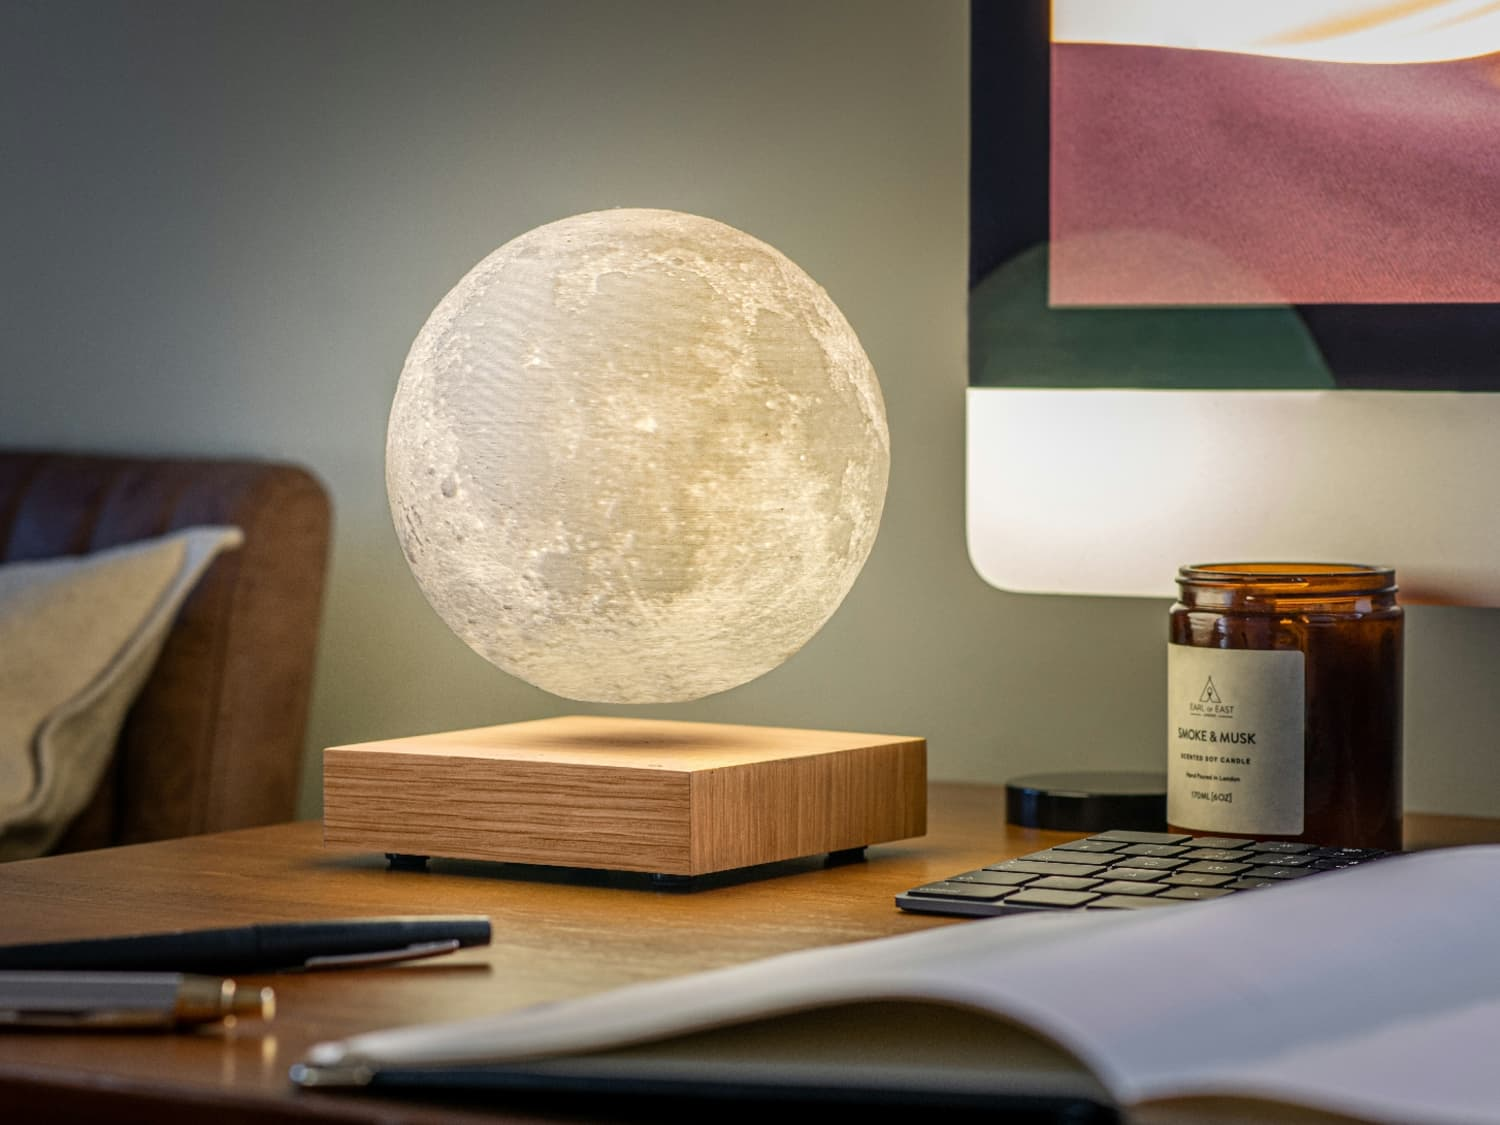 Everyday Praxis and Applications of the Distinctive Moon Lamp